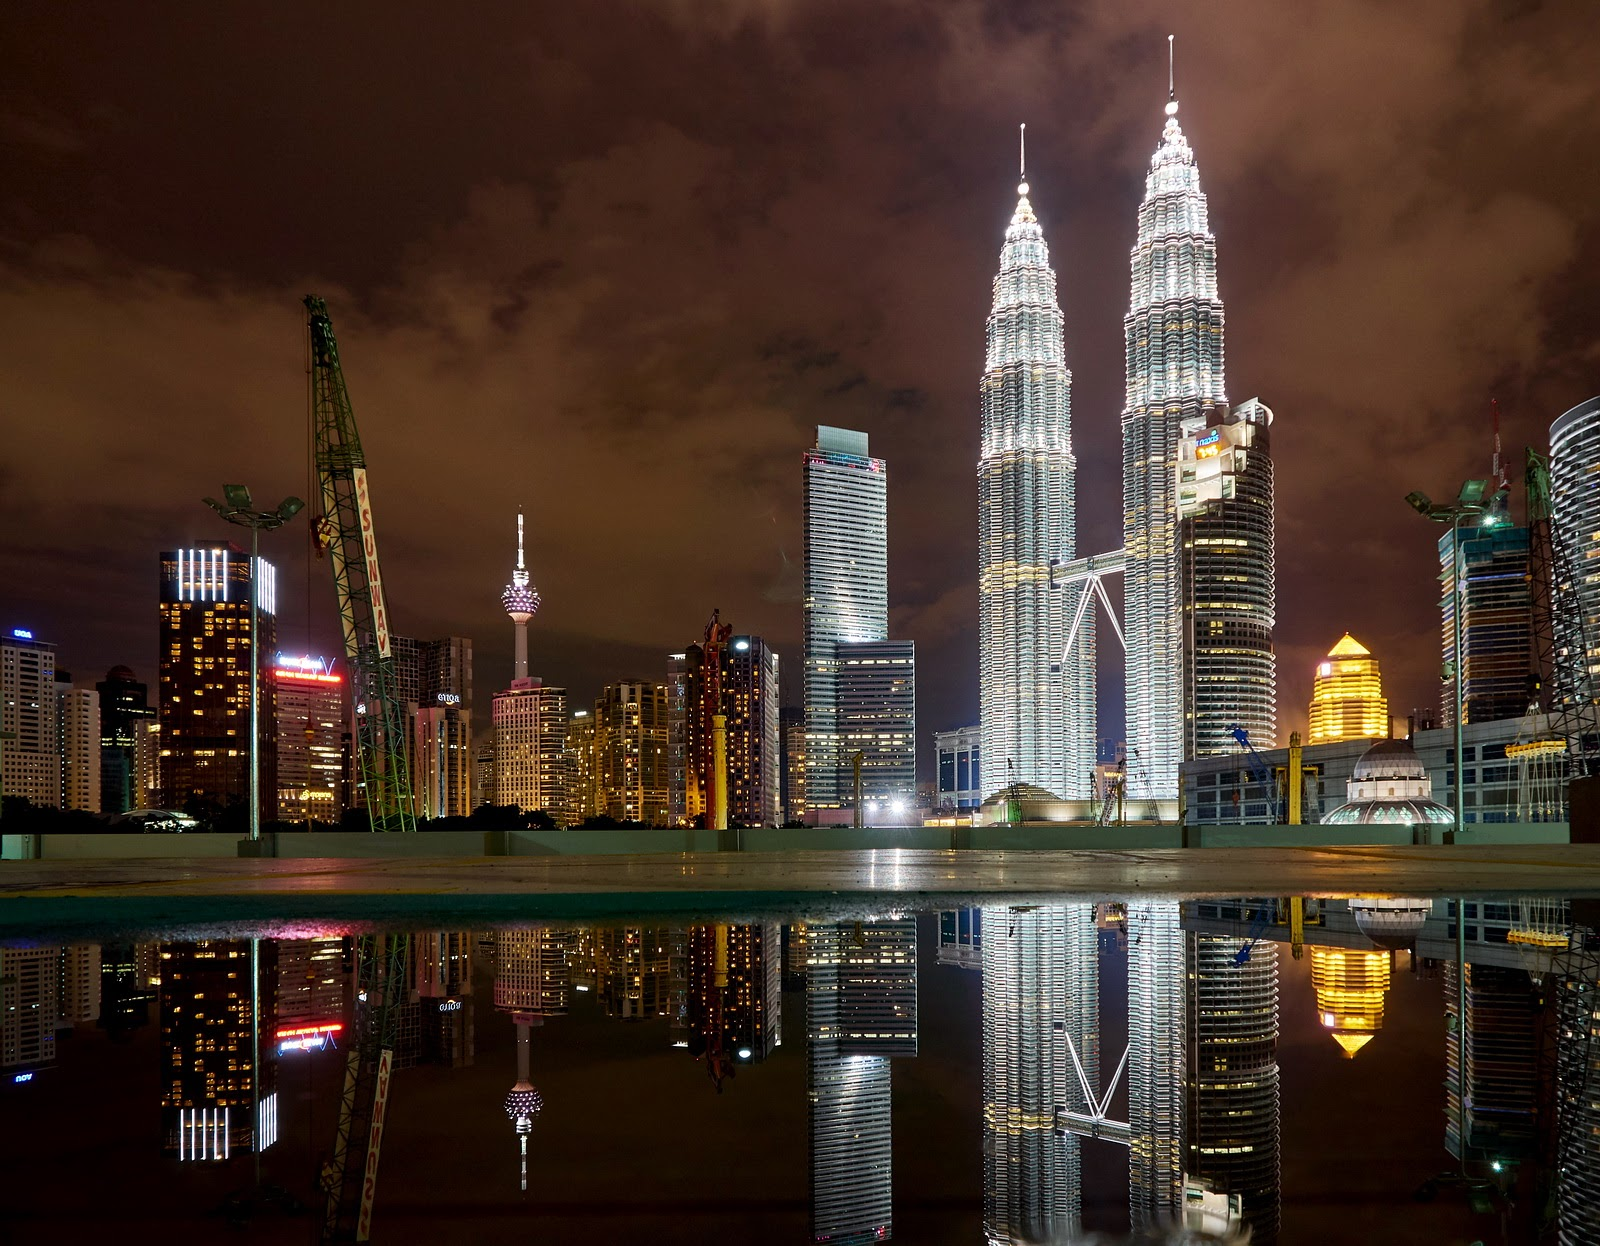 Images of Night KL Skyline from My Old Olympus OM-D E-M5 (Original)